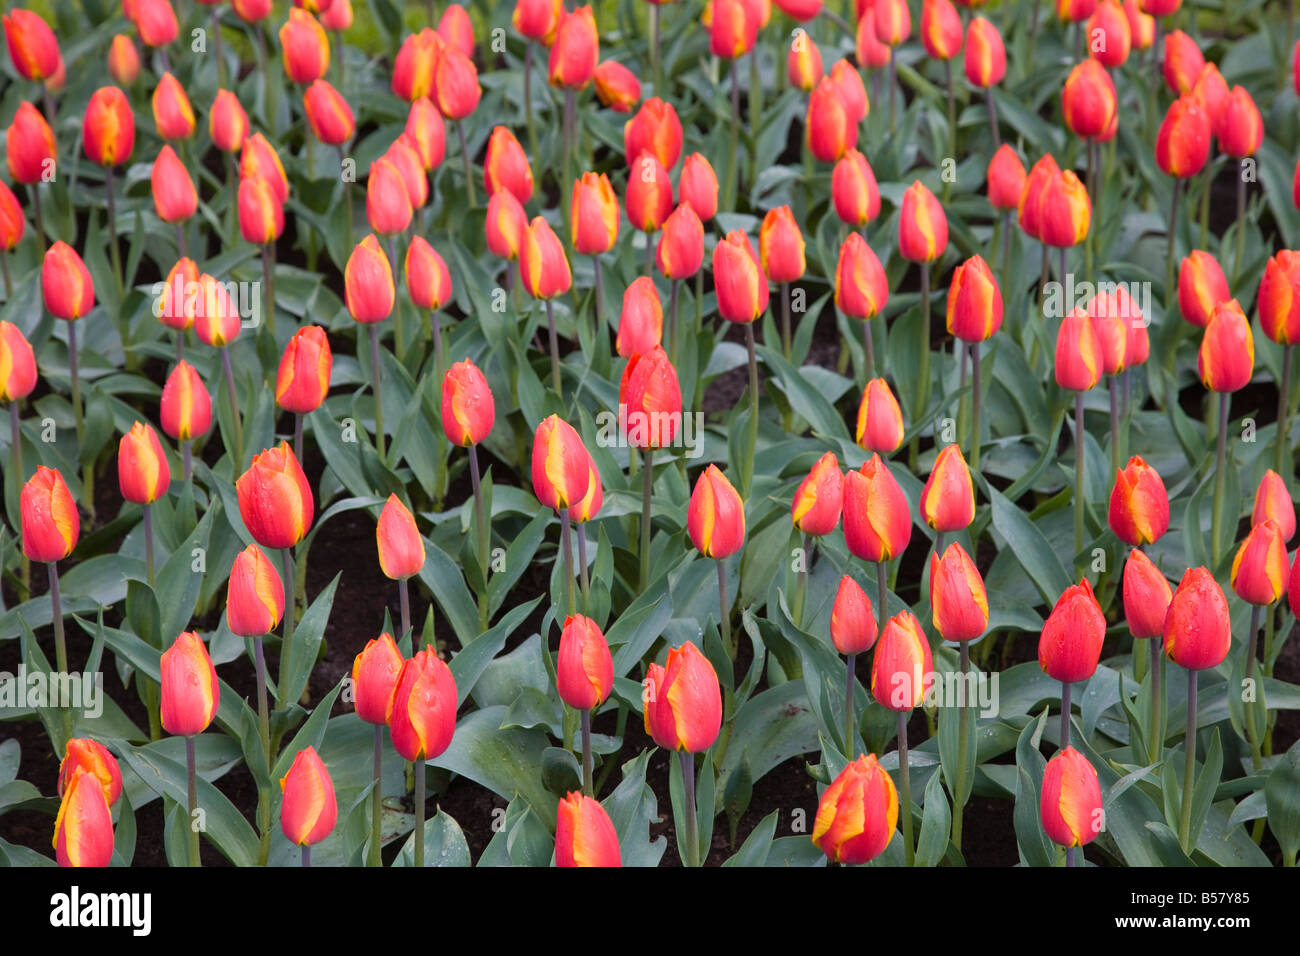 tulips park in amsterdam netherlands stockfotos tulips. Black Bedroom Furniture Sets. Home Design Ideas